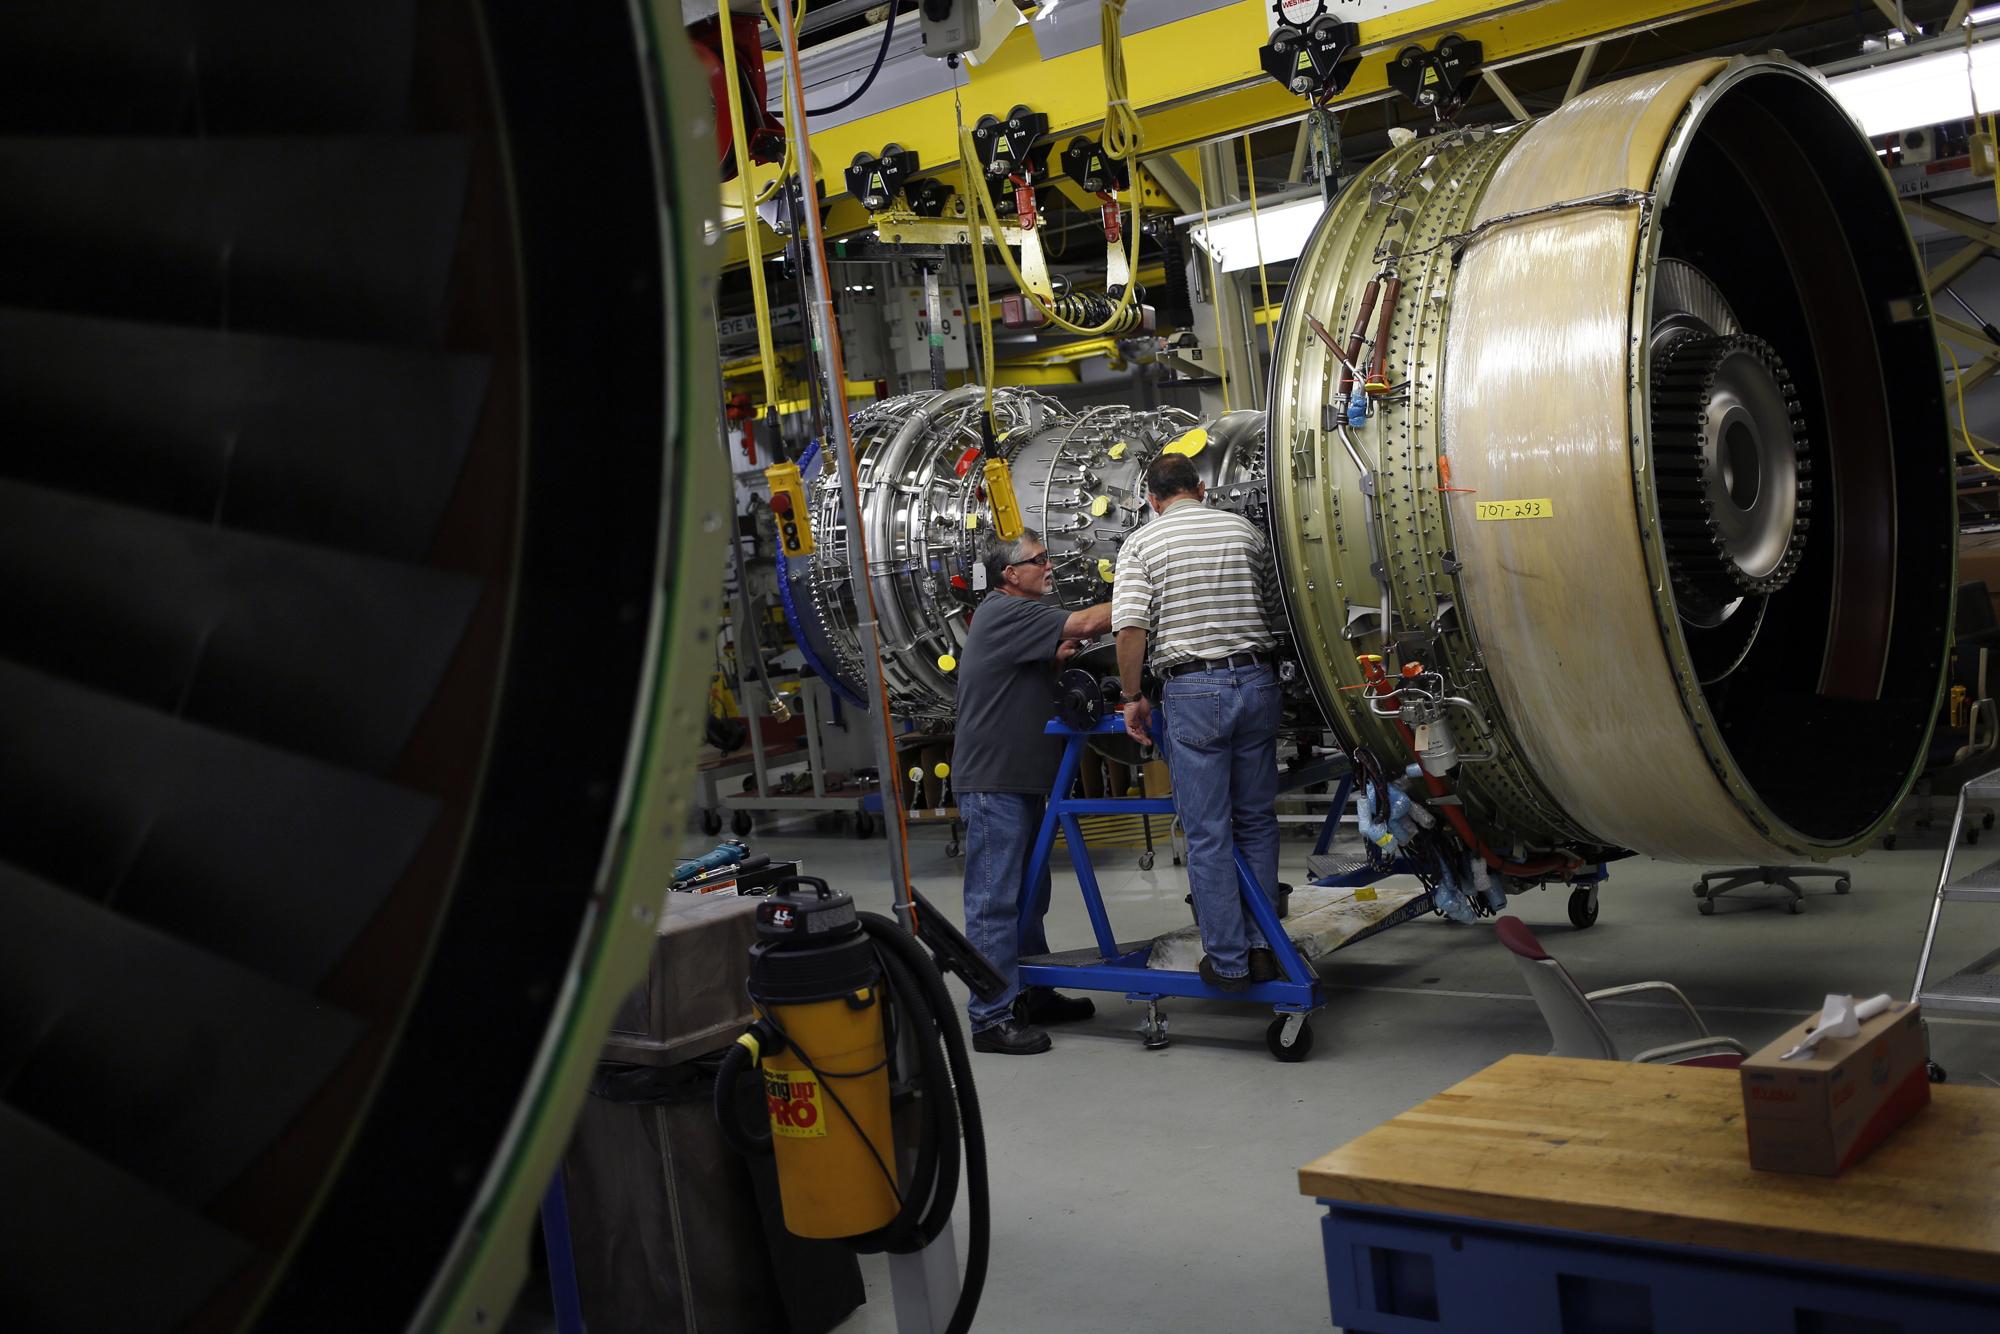 Workers assemble a General Electric Co. CF6-80C2 jet engine at the GE Aviation factory in Cincinnati, Ohio, June 25, 2014.